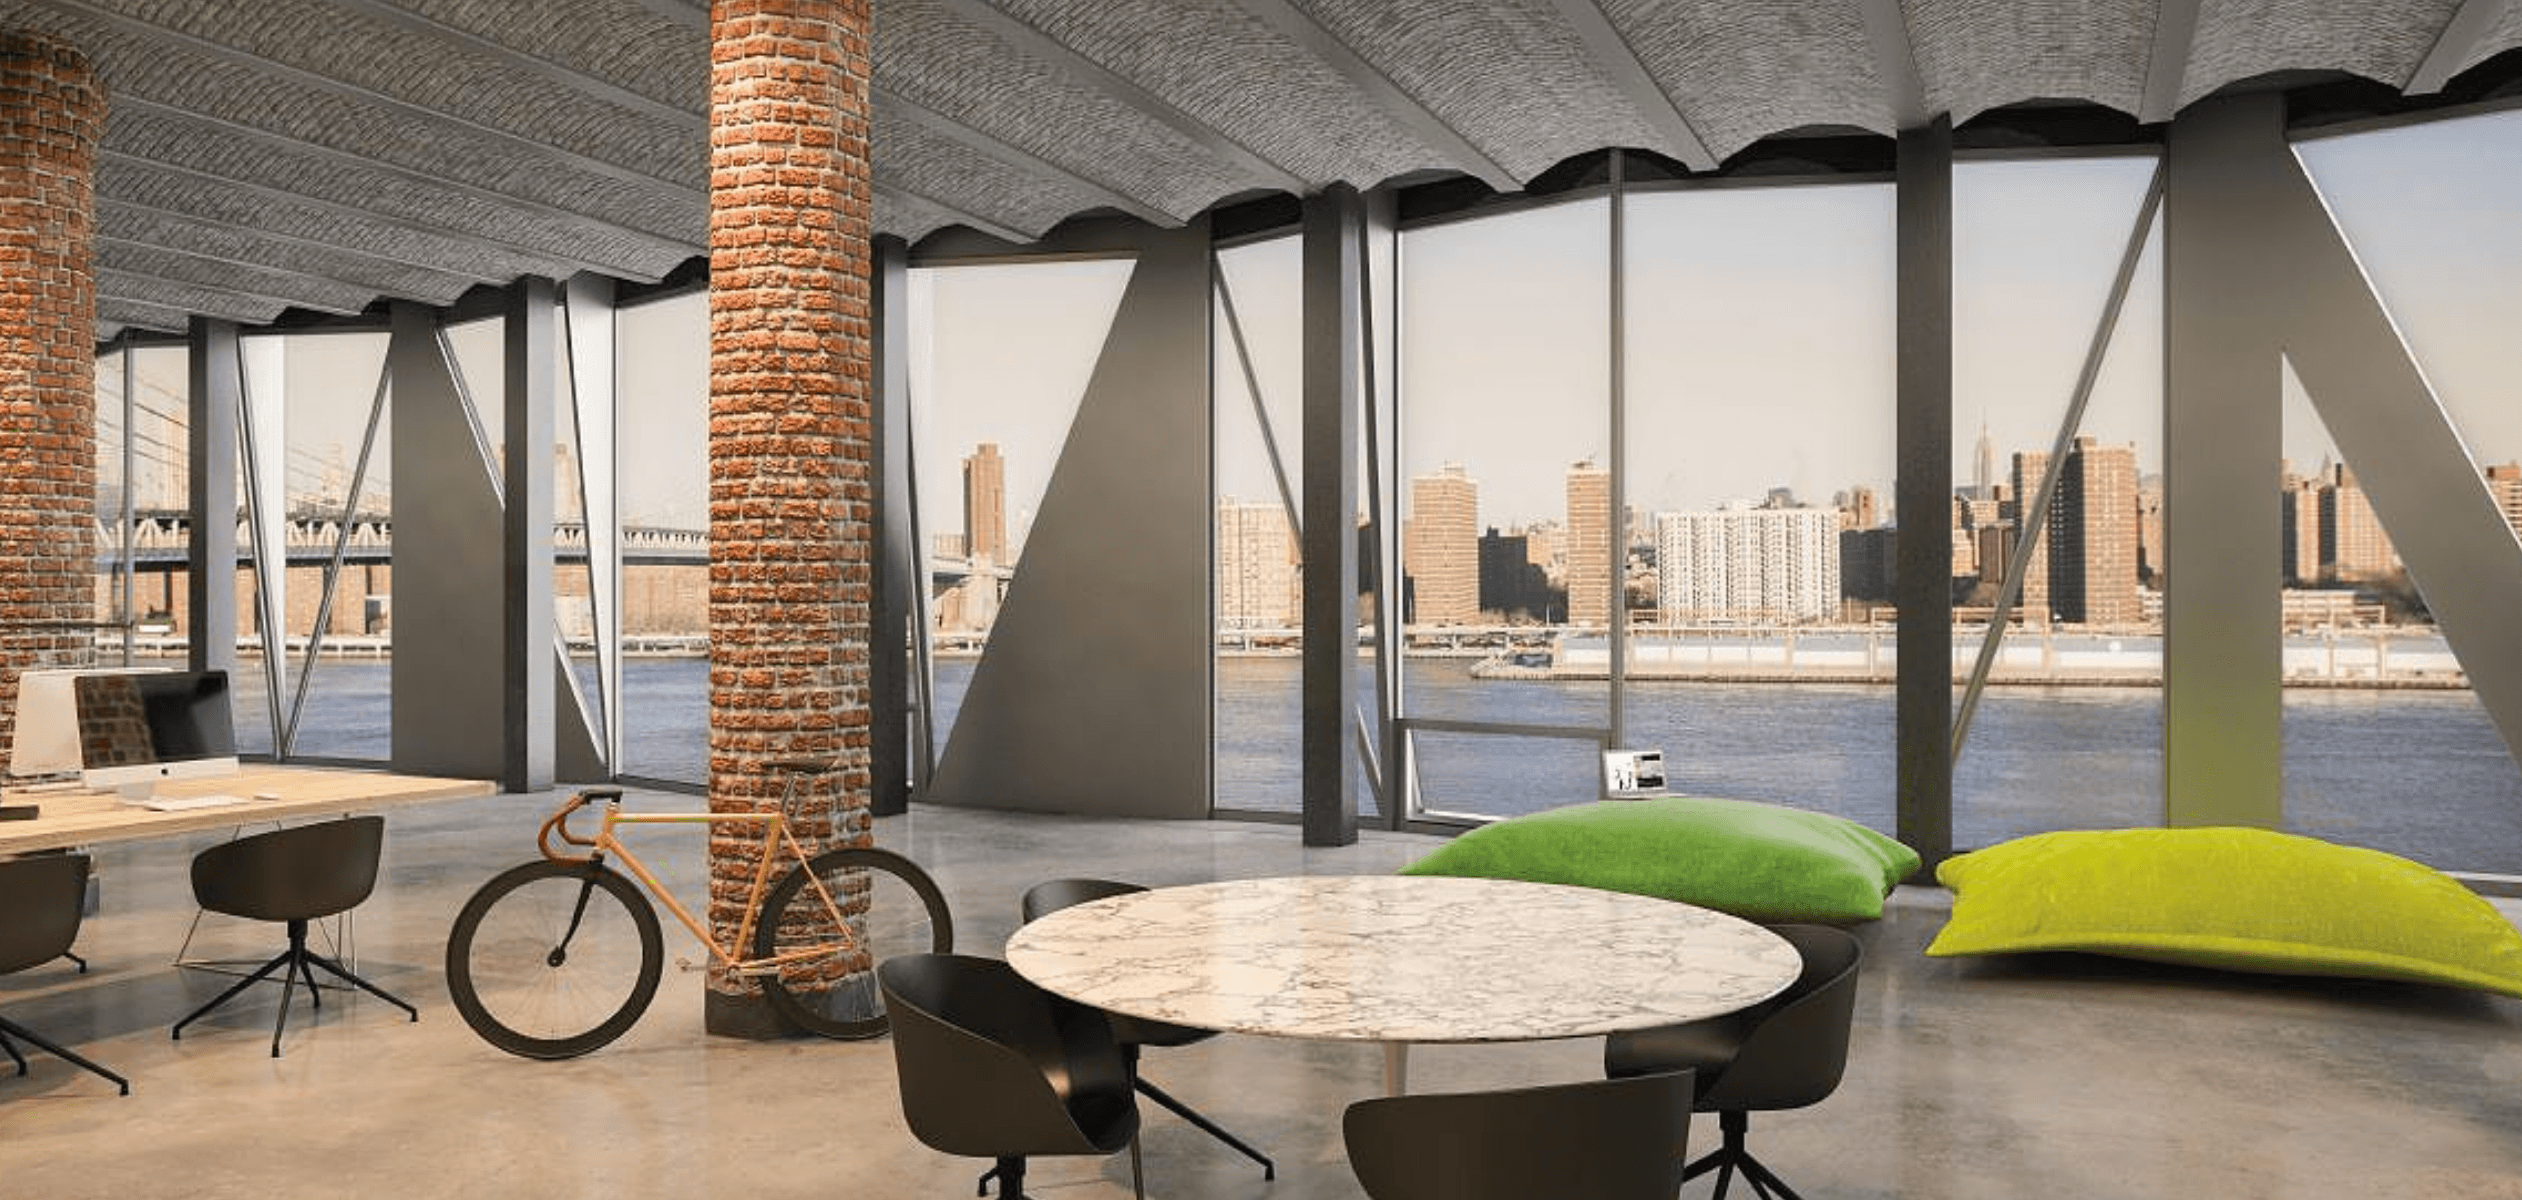 The Office Spaces Are Loft Like And Open, Highlighted By The Incredible  East River Views Through The Geometric Windows, Exposed Brick Columns, ...